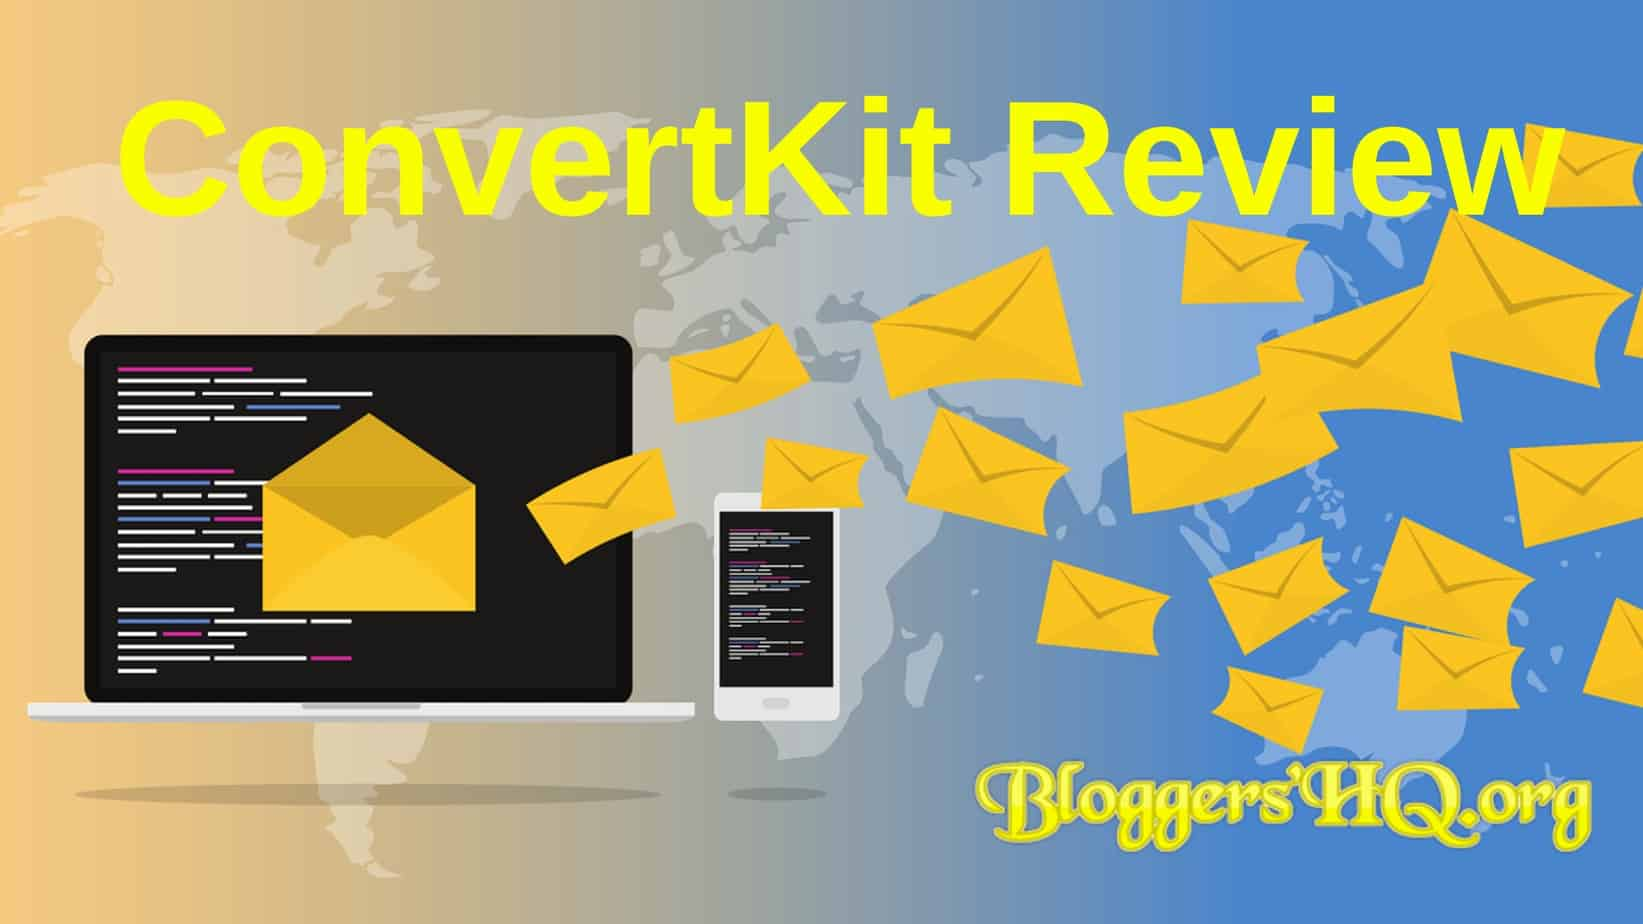 Free Upgrade Code Convertkit May 2020